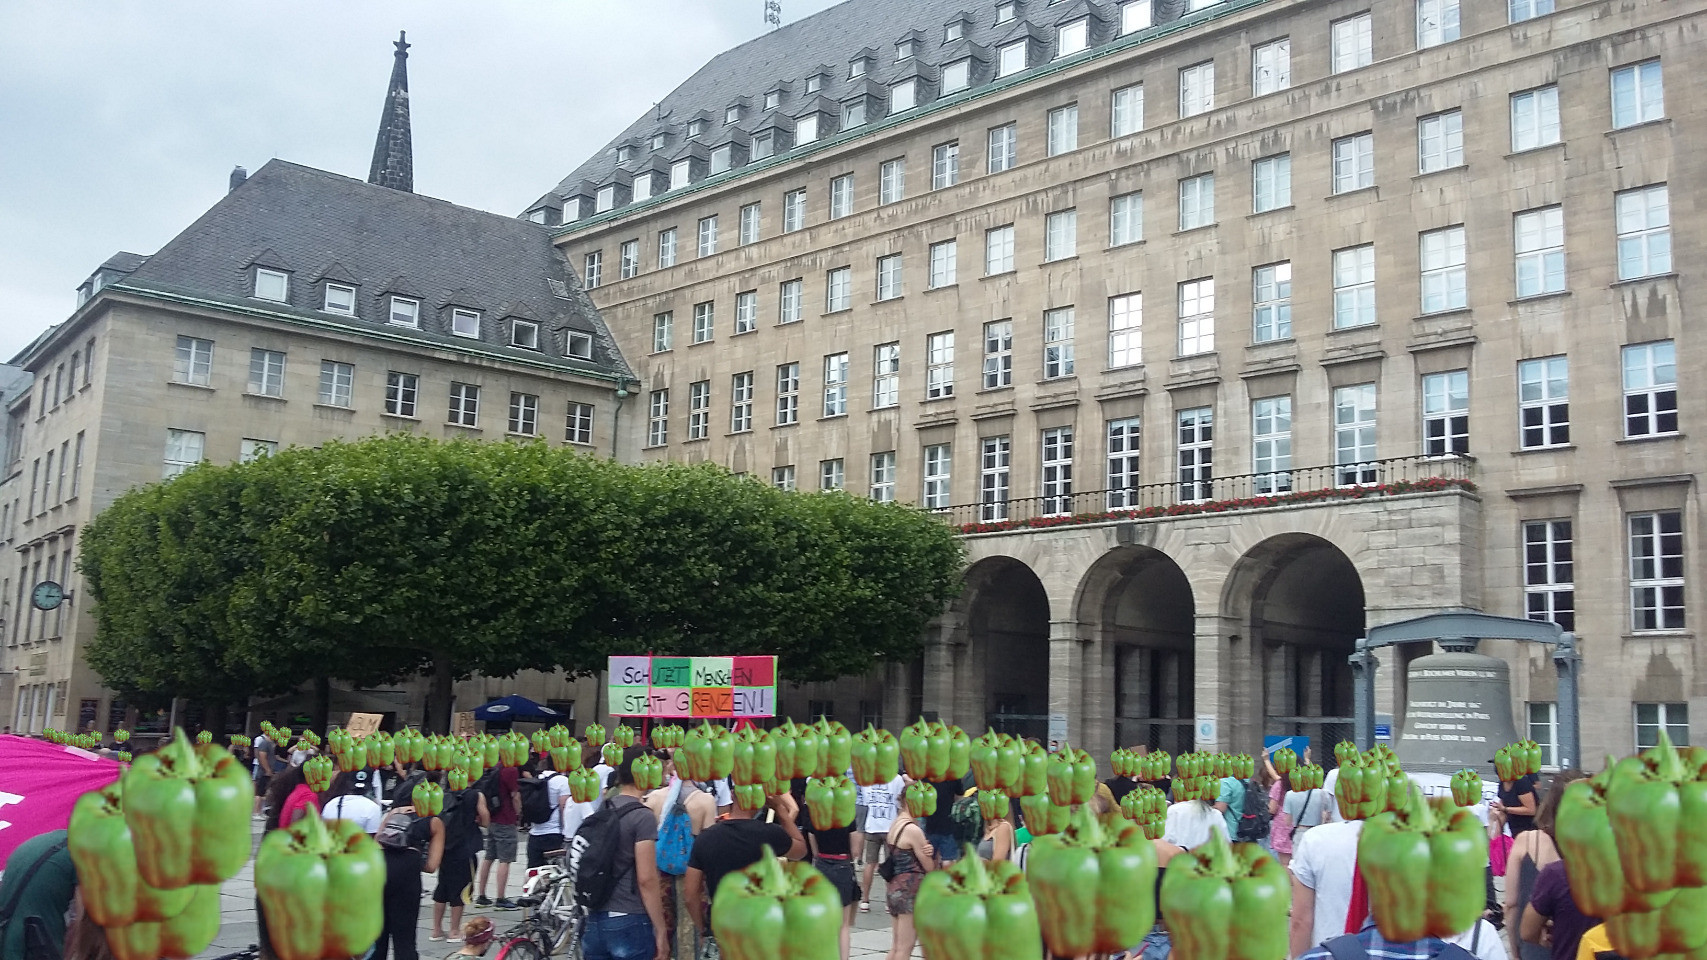 black lives matter in Germany where anybody's head is replaced with a green paprika